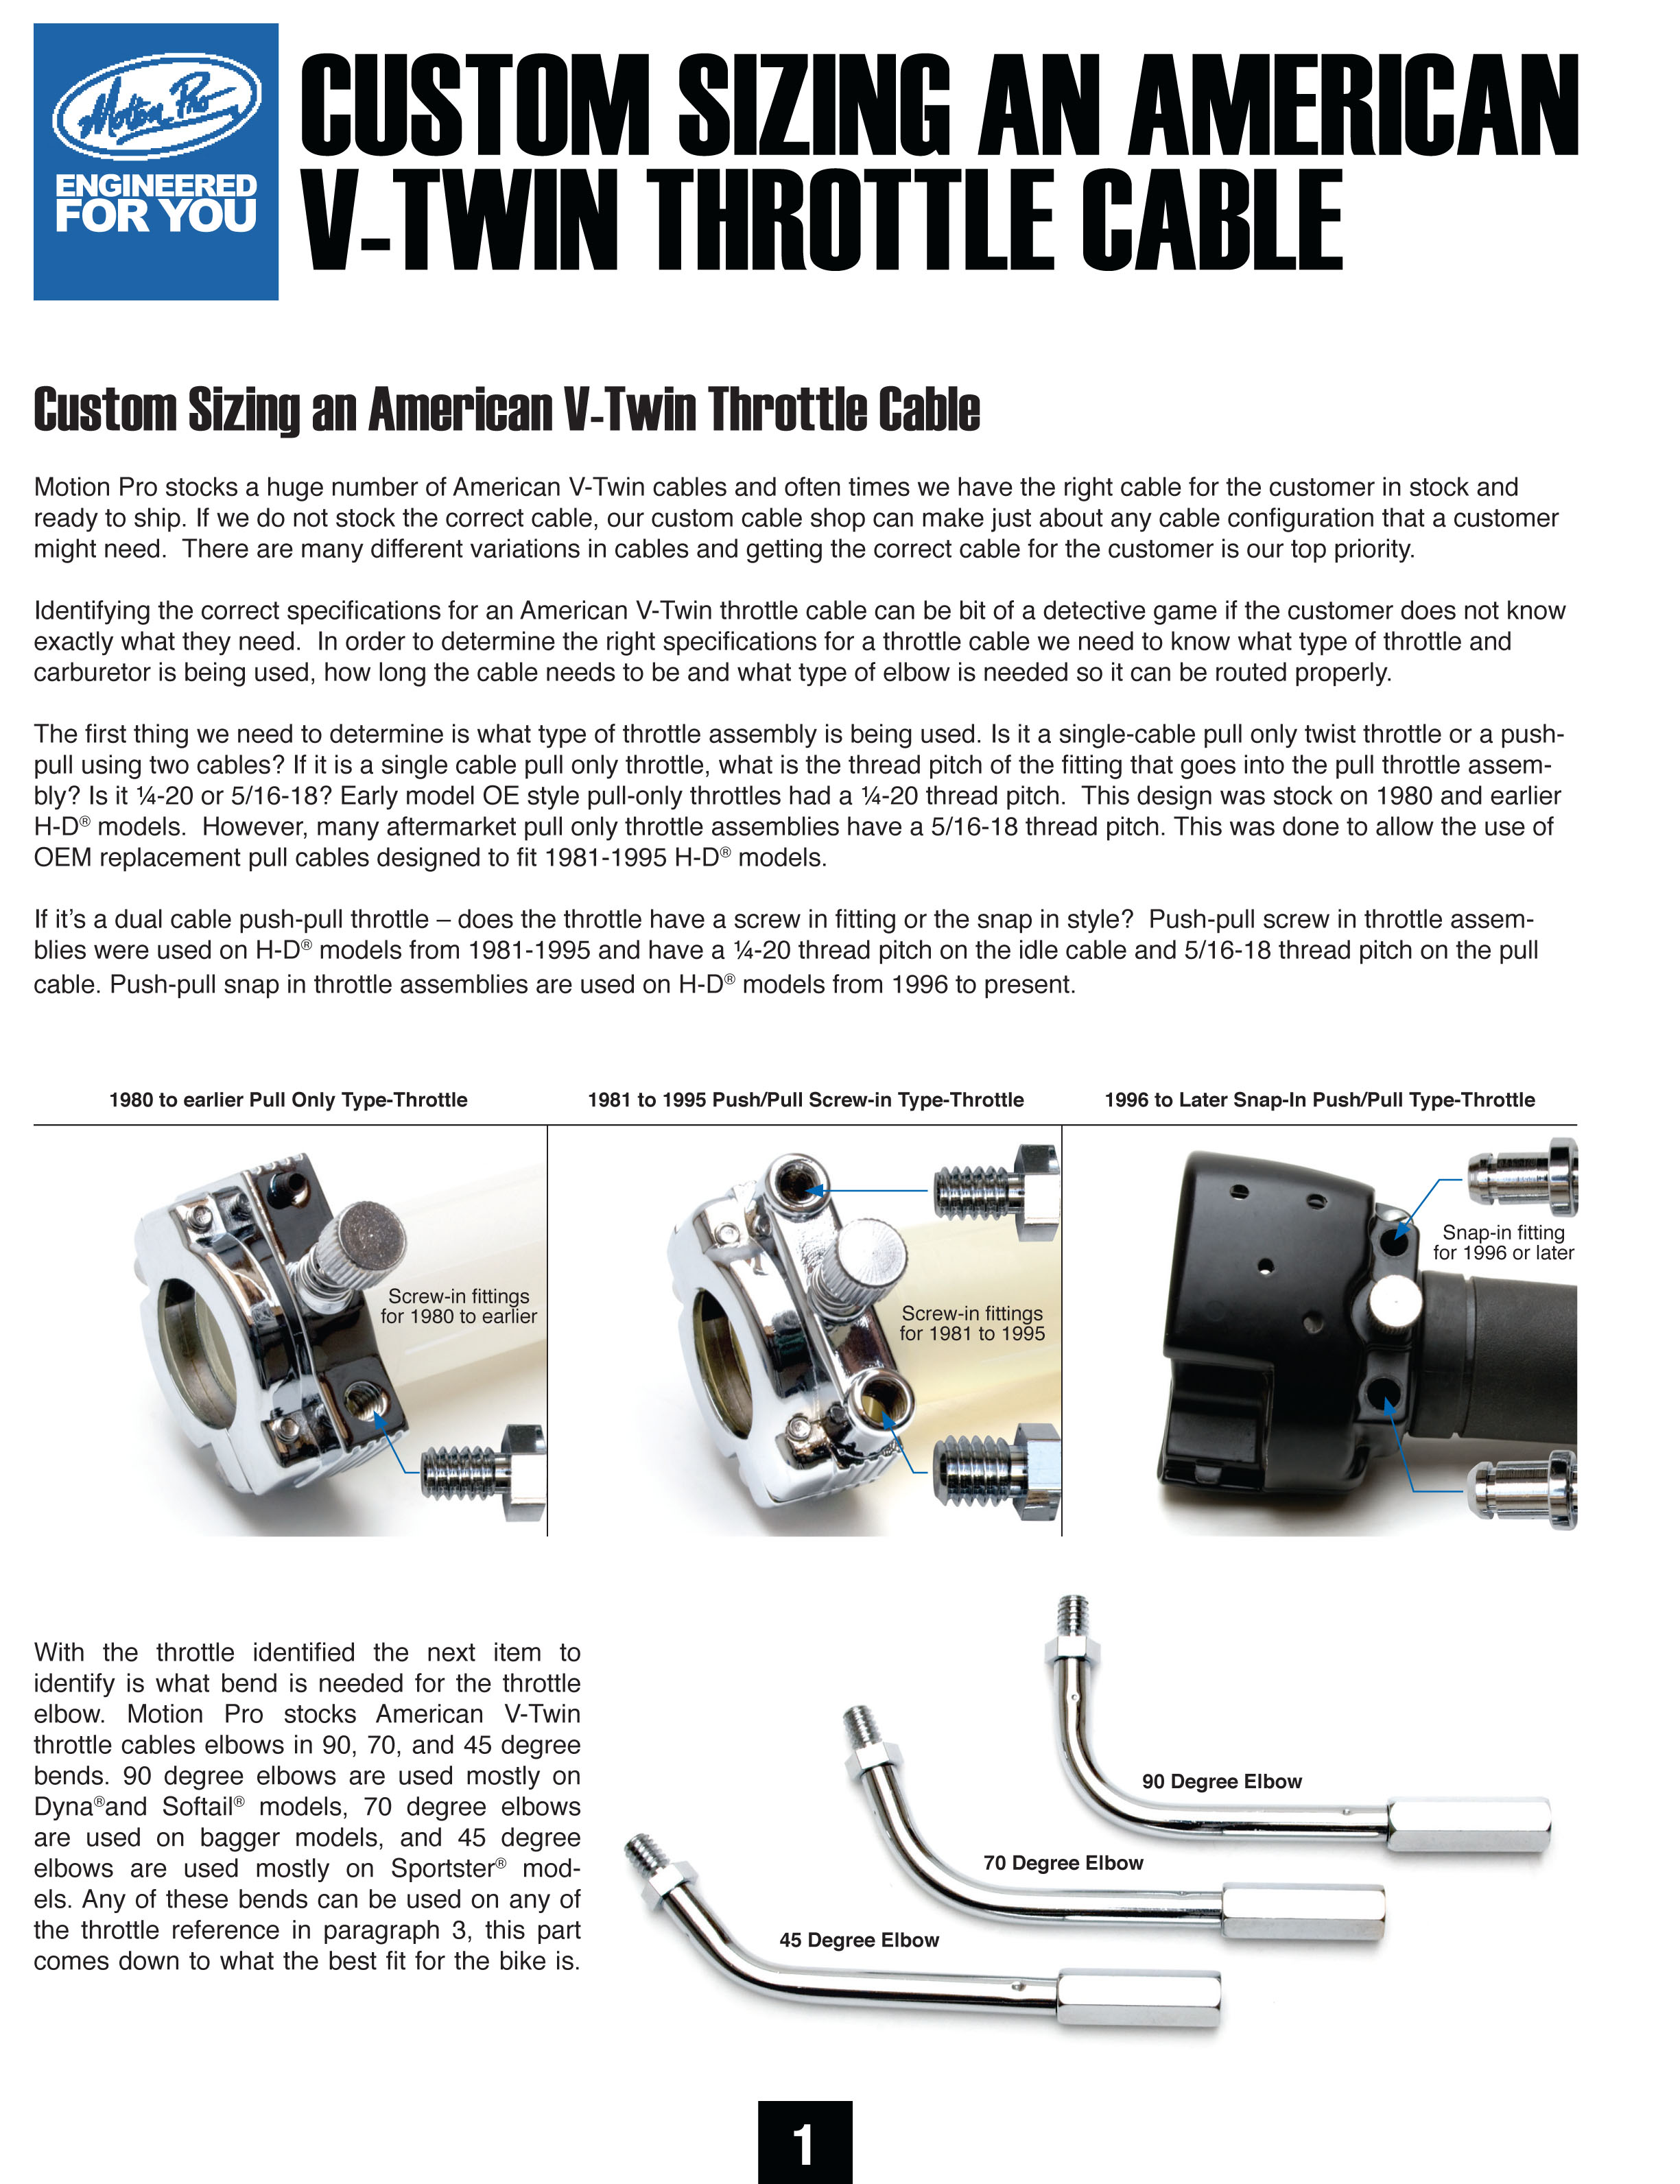 Custom Sizing V-TWIN Throttle Cables